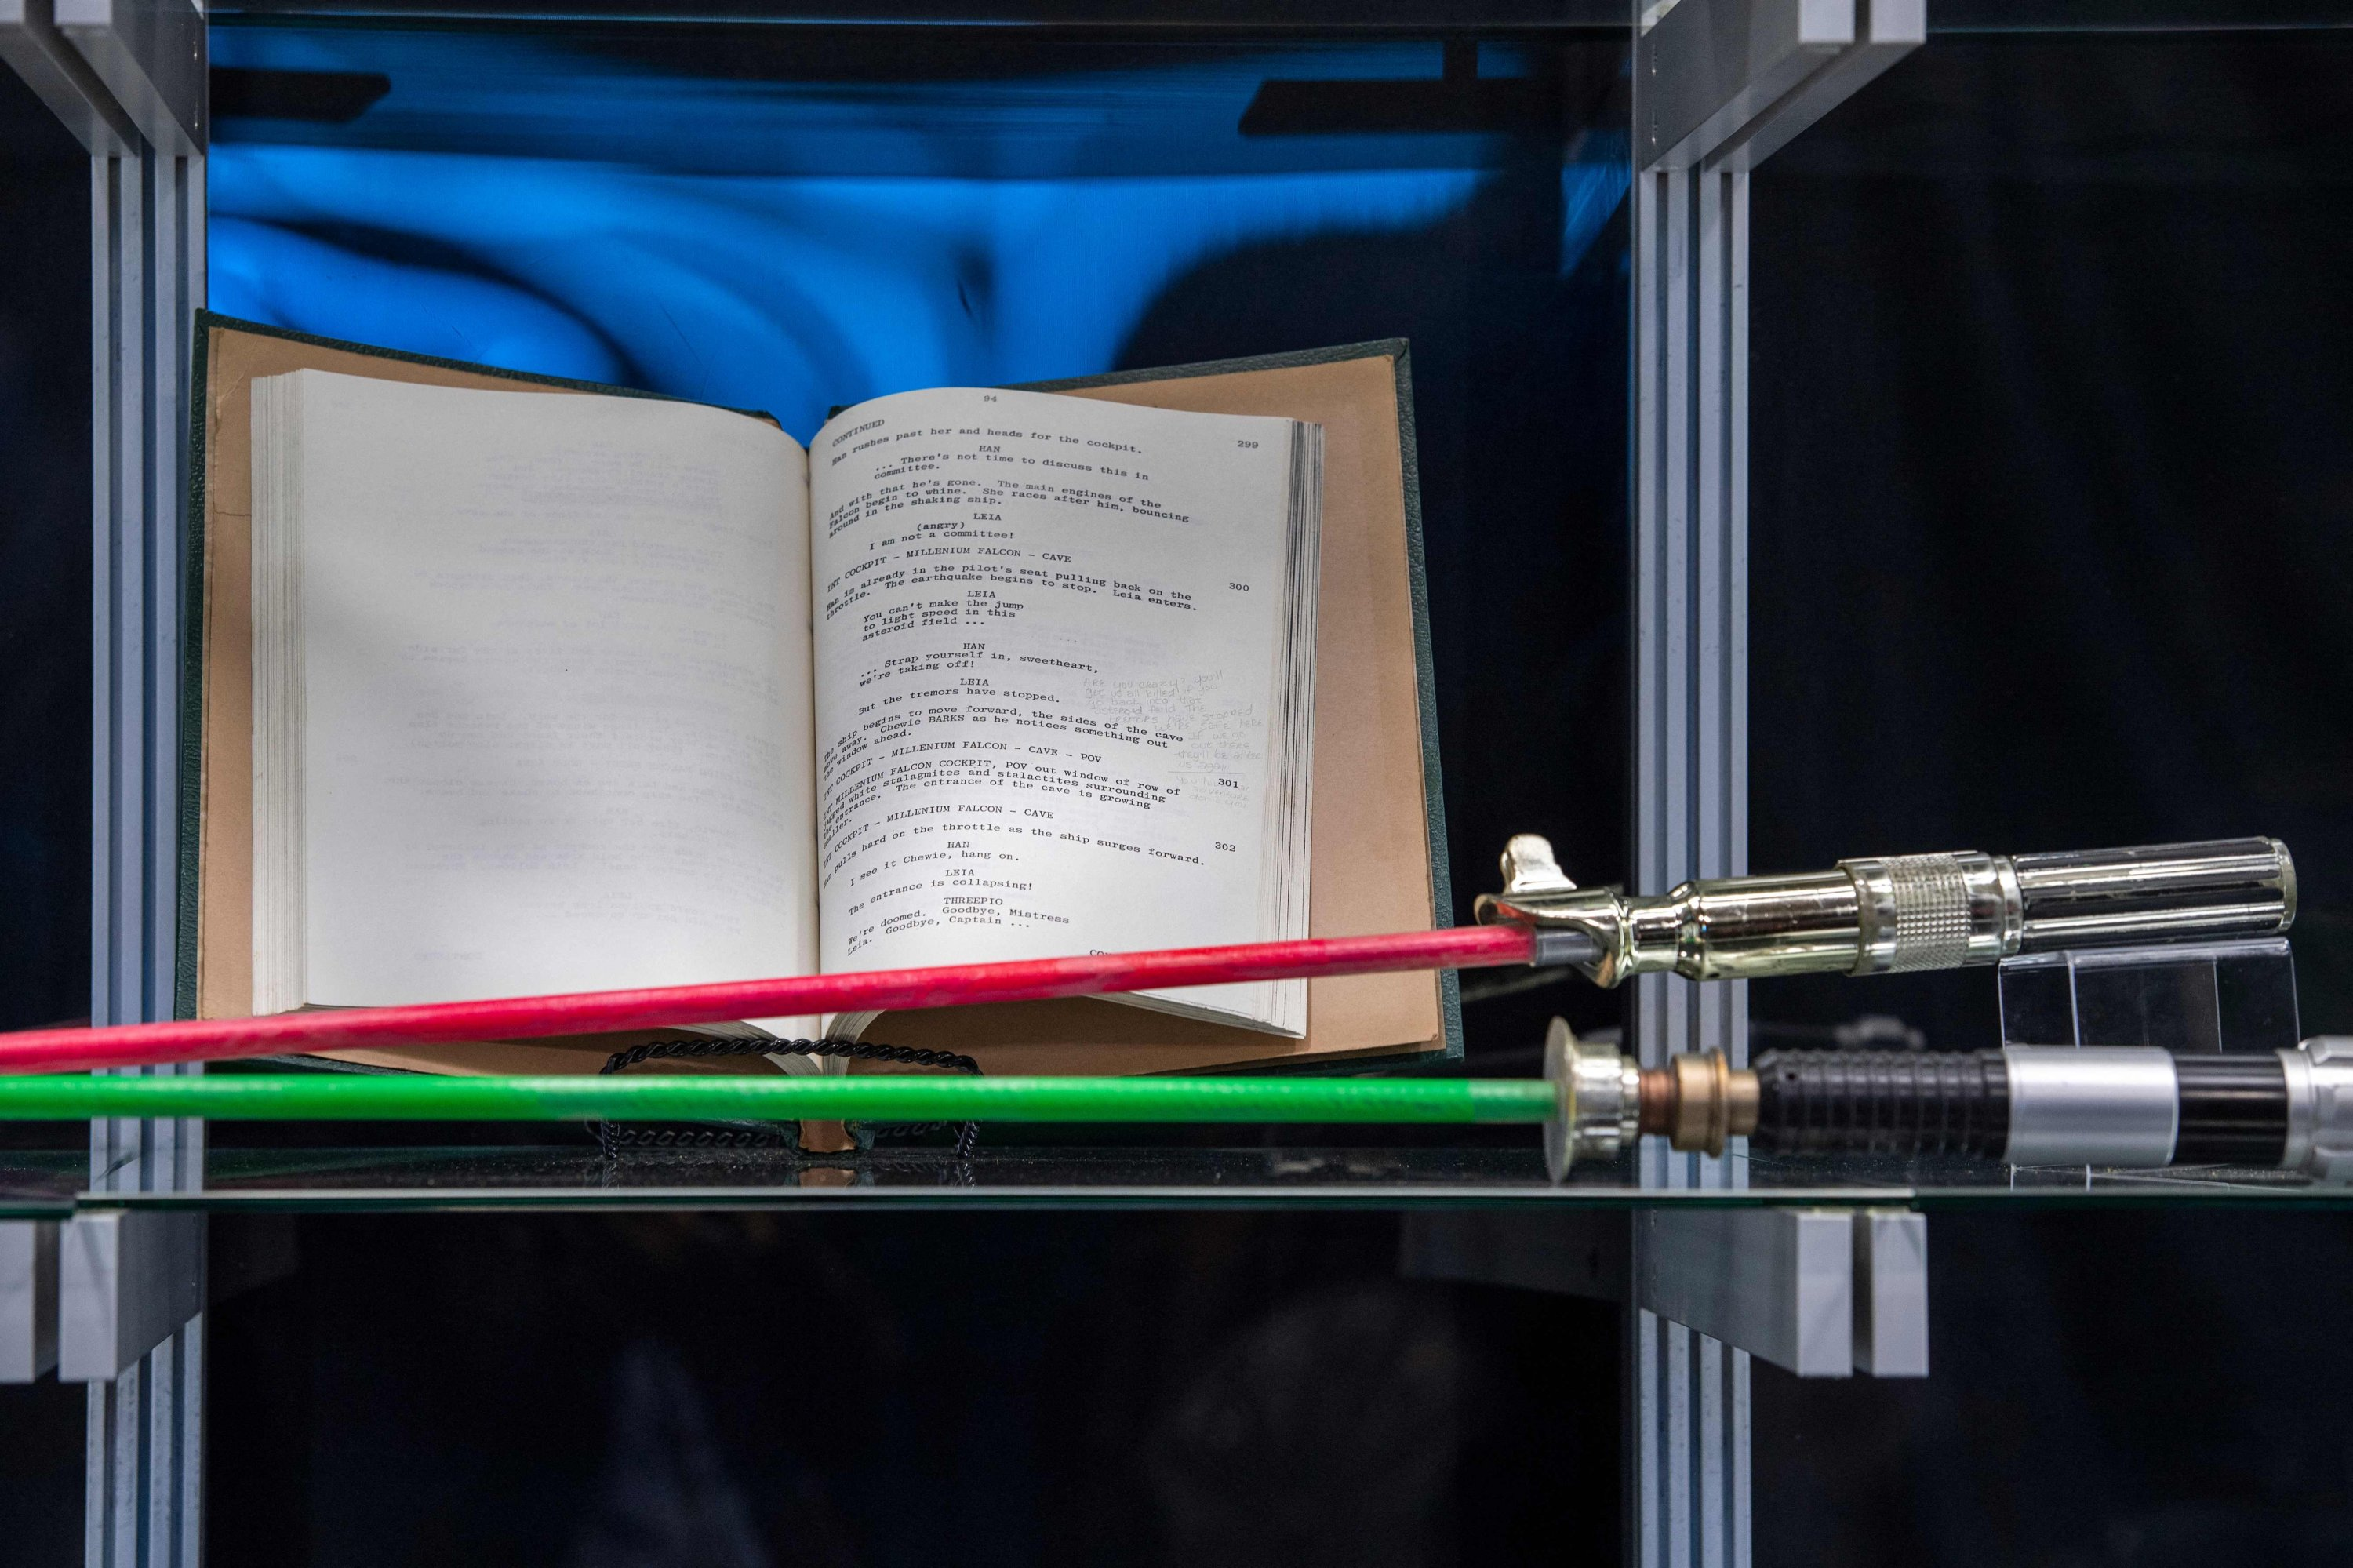 Obi-Wan Kenobi and Anakin Skywalker's bladed dueling lightsabers and Carrie Fisher's heavily hand-annotated script from 'The Empire Strikes Back,' are among the items exhibited during a press preview of Prop Store's Iconic Film & TV Memorabilia in Valencia, California, May 14, 2021. (AFP Photo)